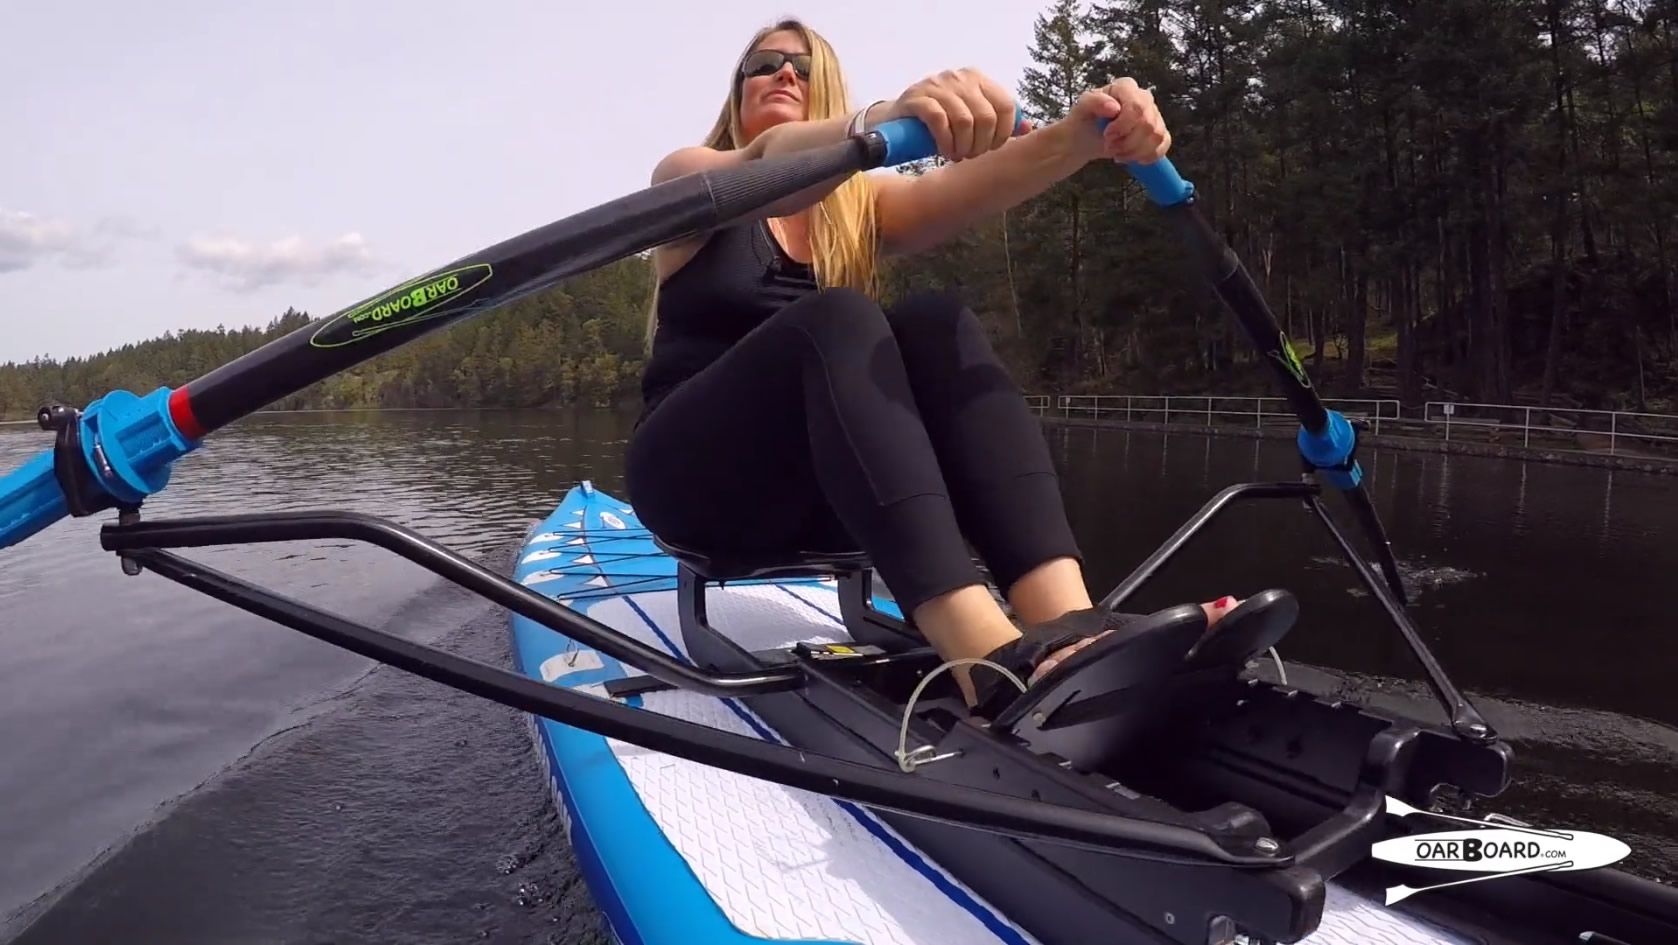 Oar-Board-SUP-Fit-On-Top-Rower-video-withDiana-Lesieur-1